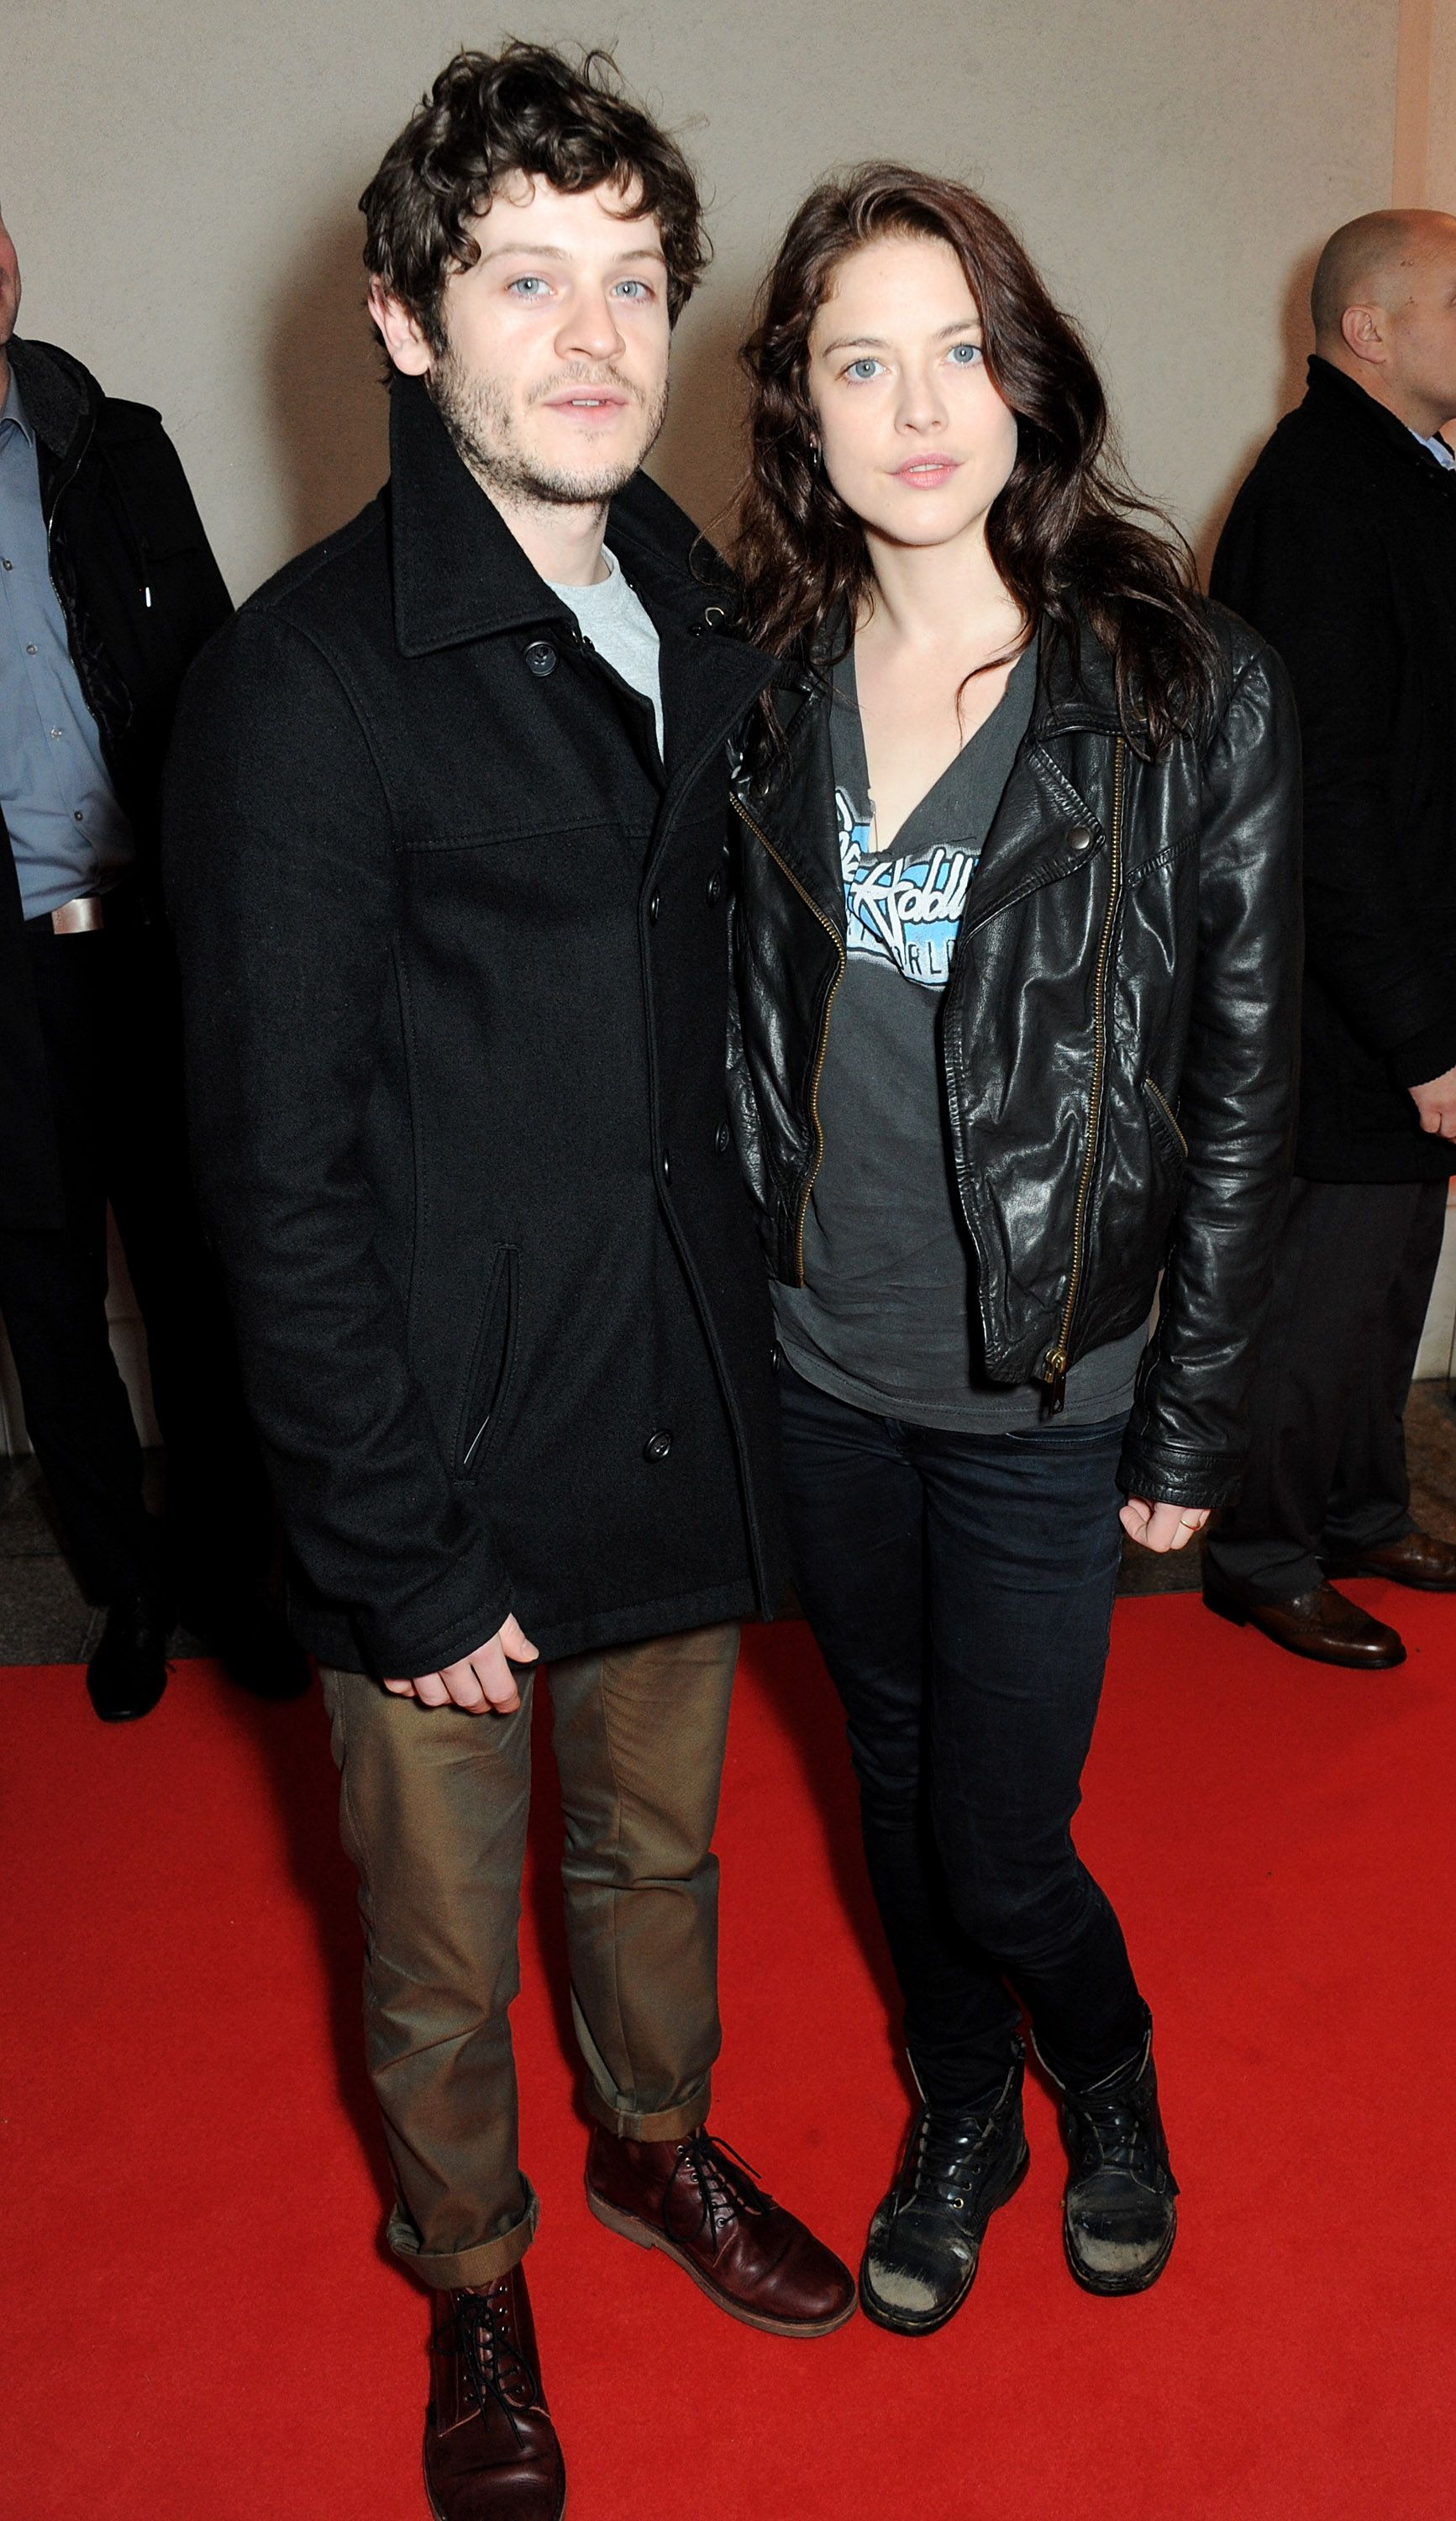 Iwan Rheon (Ramsay Bolton) and Zoe Grisedale Remember, people: Ramsay Bolton is not a real person. In real life, Iwan Rheon and his partner Zoe are proud parents to a little one who was born in 2018.